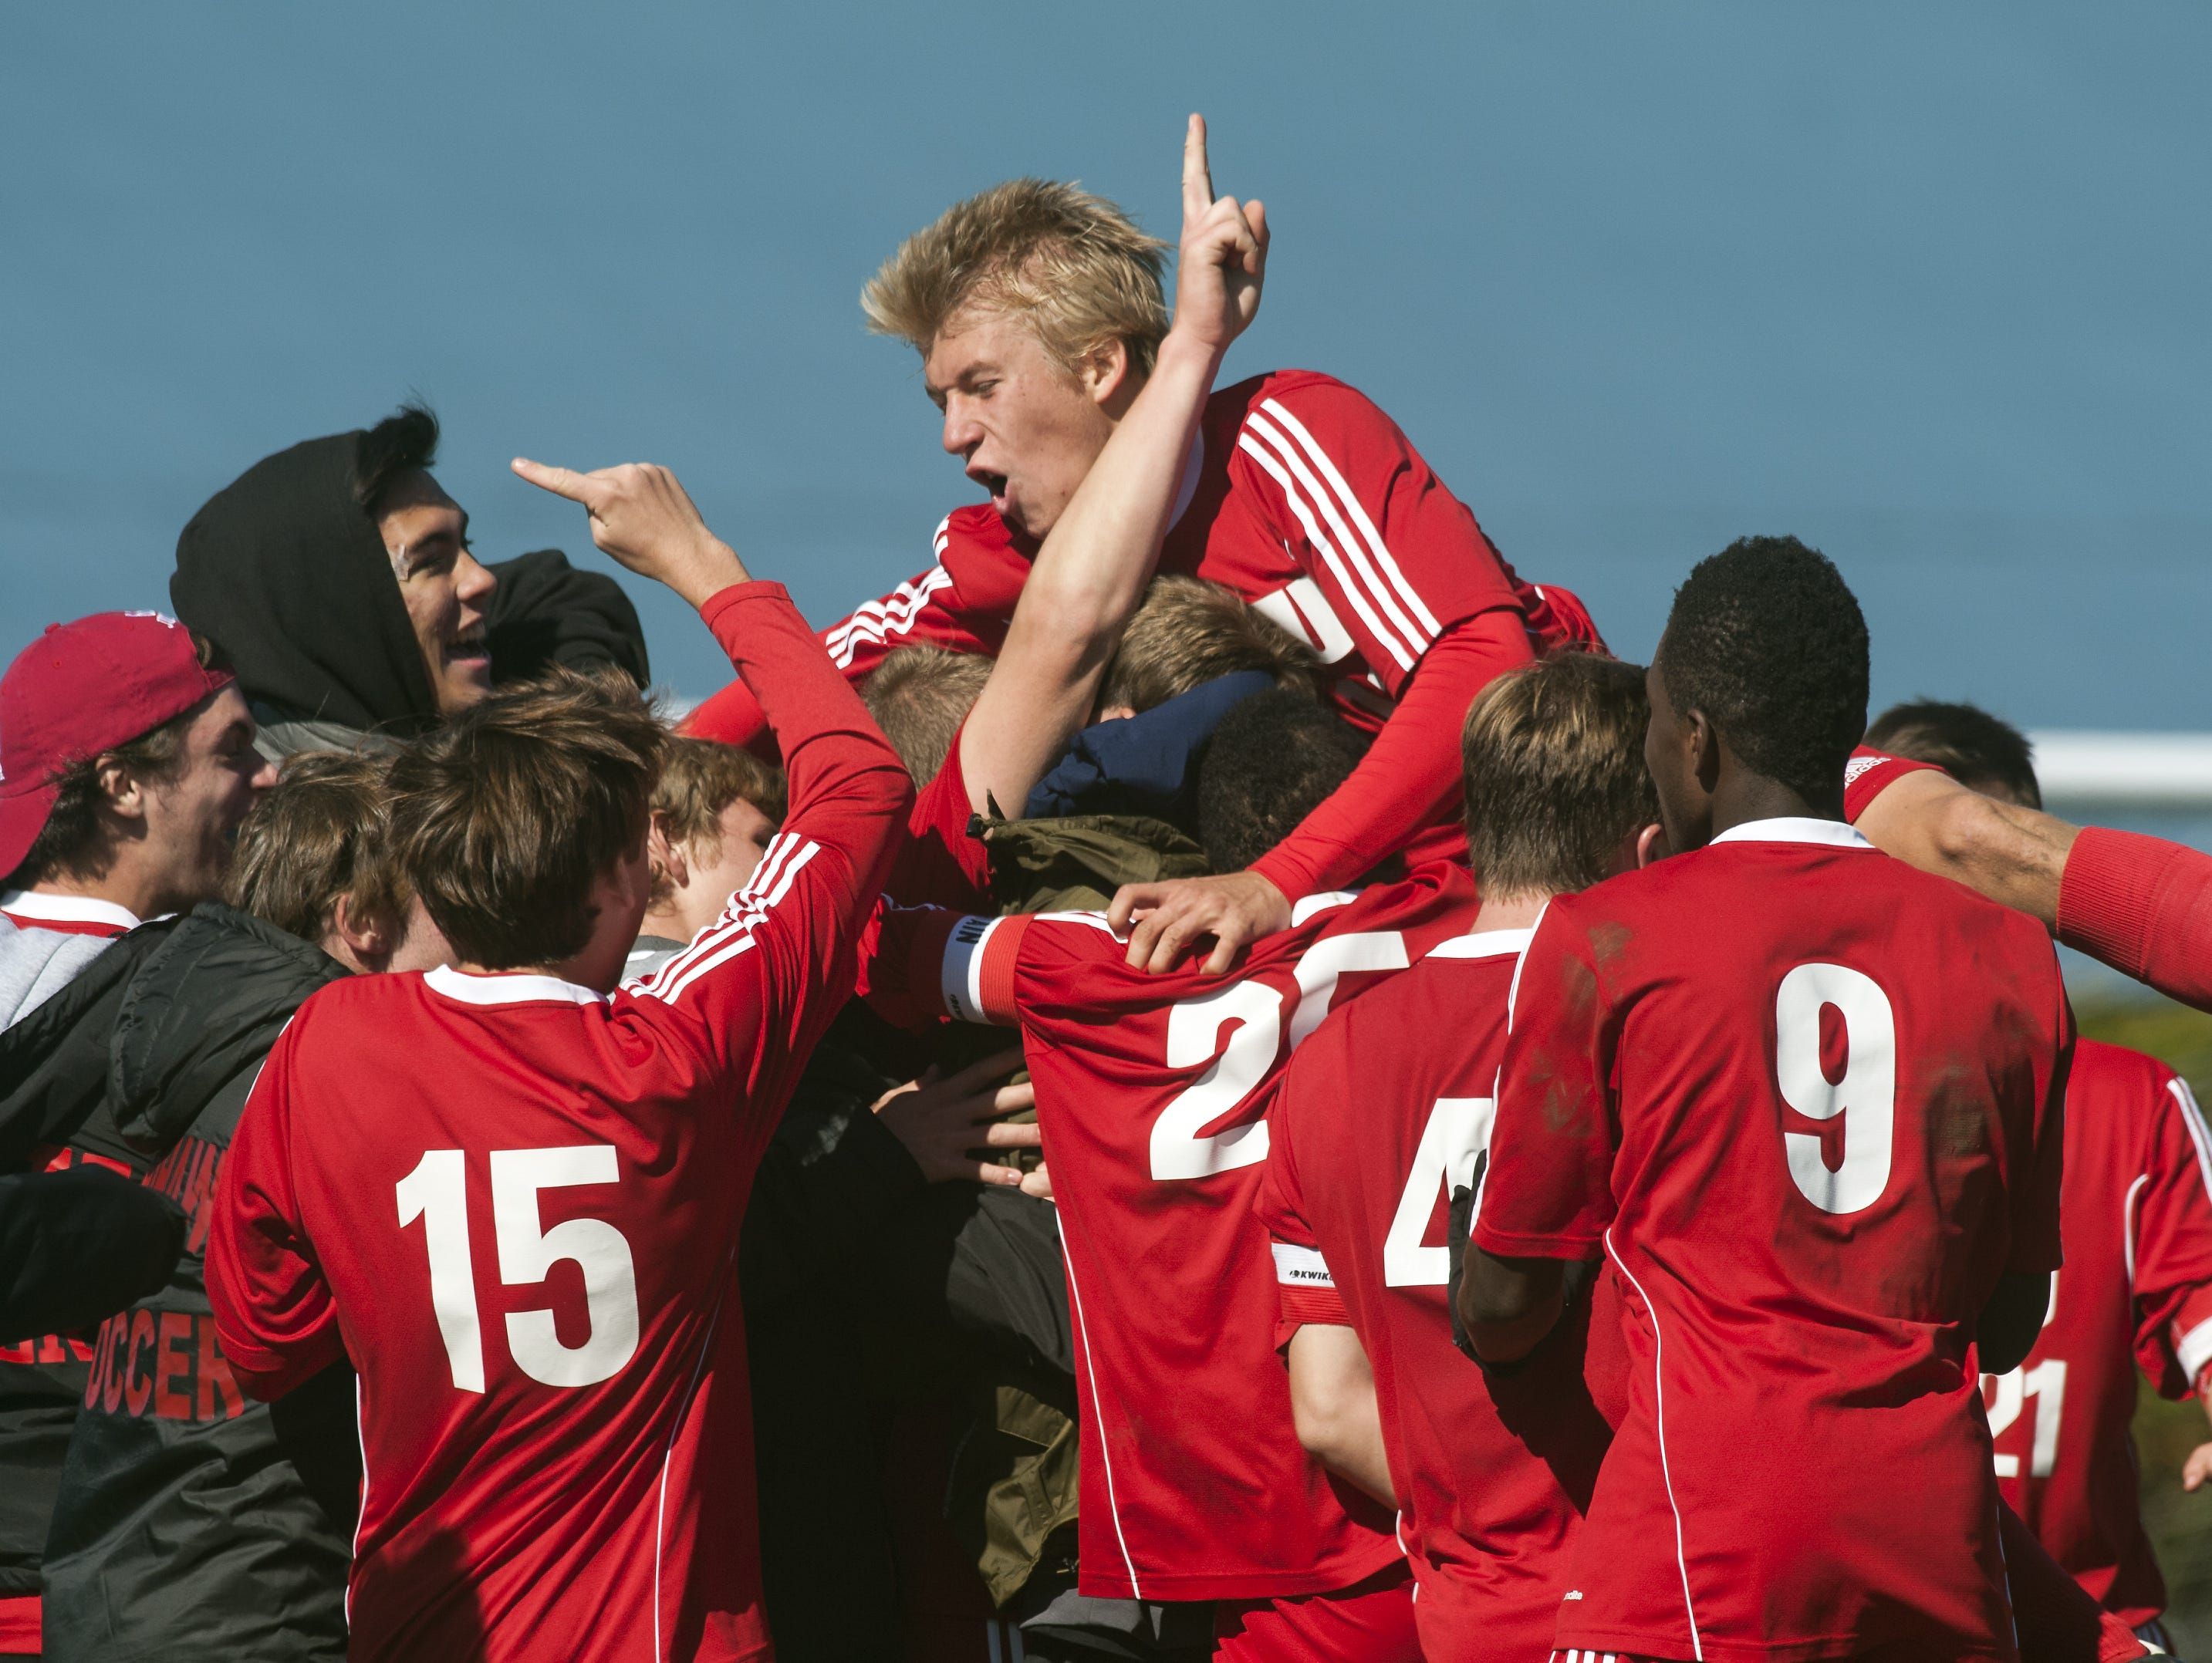 CVU celebrates an overtime goal during the boys soccer game between the Champlain Valley Union Redhawks and the Essex Hornets at Essex High School on Saturday mooring October 10, 2015 in Essex.